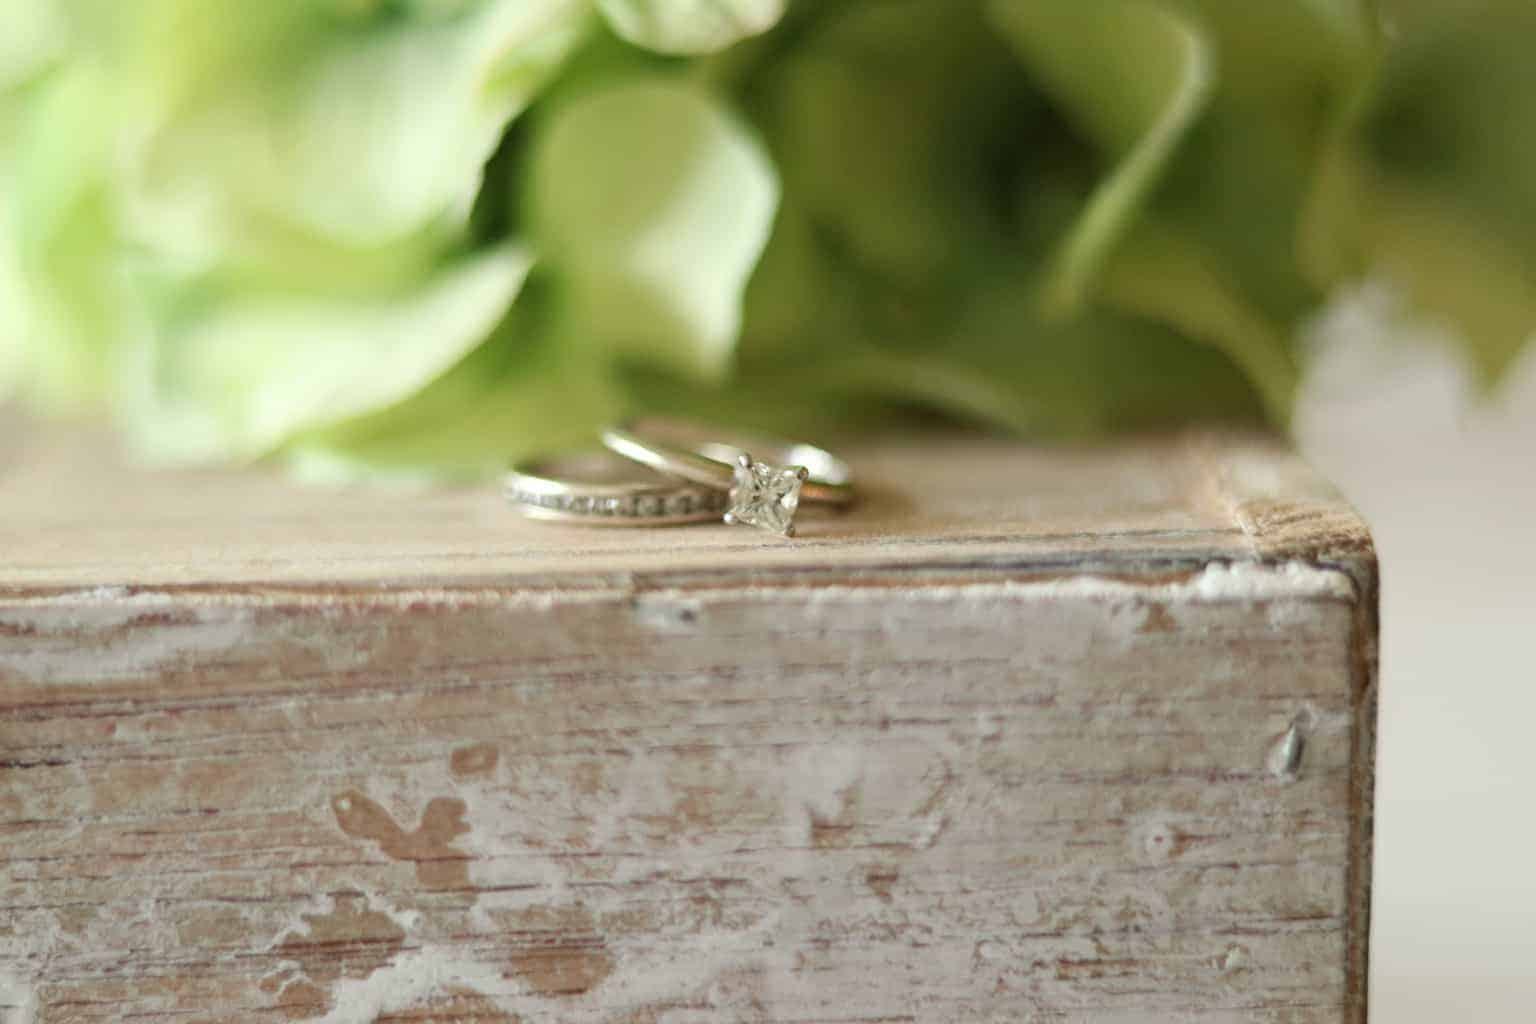 Wedding and engagement ring on old wooden box with flowers in background.